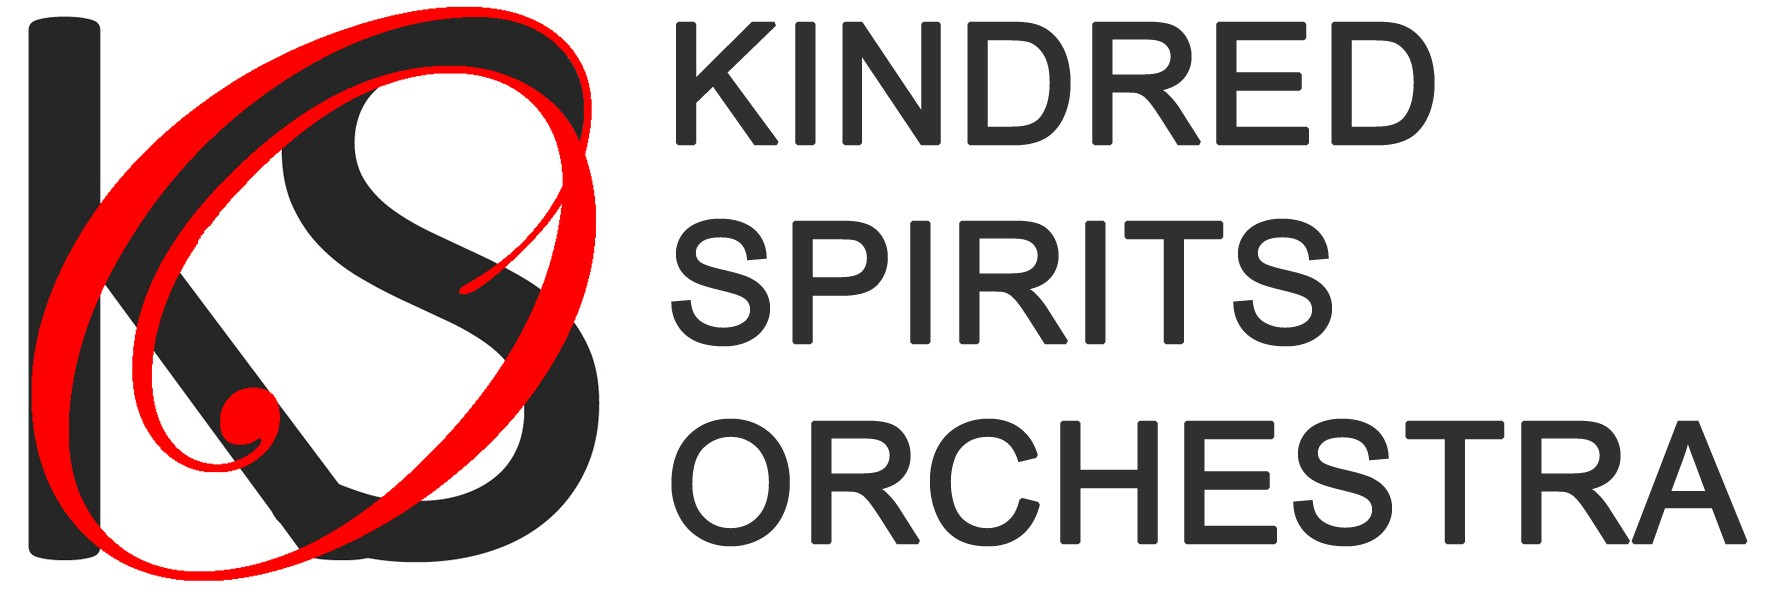 Kindred Spirits Orchestra